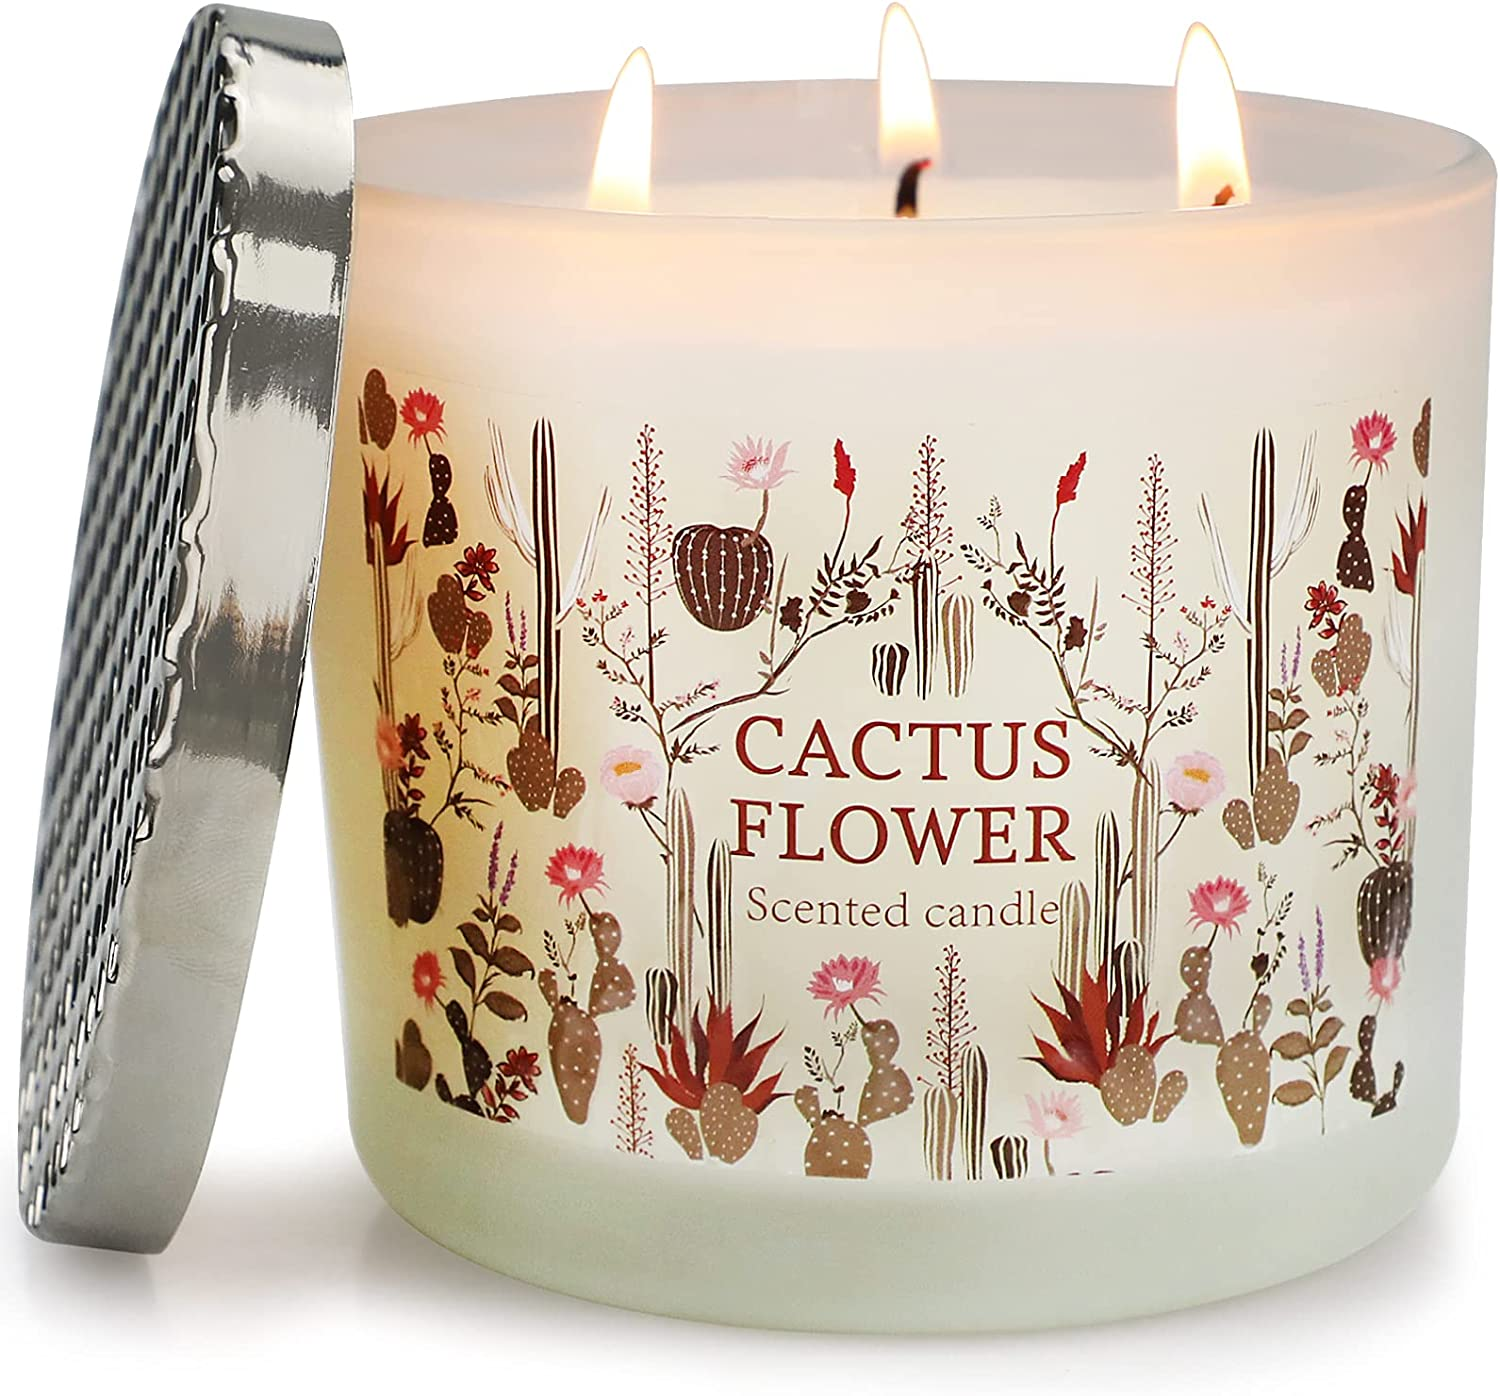 Inayou Large 3 Wick Candle for Home Scented, Cactus Flower Scented Candle,14.6Oz Natural Soy Wax, 125H Long-Lasting Candle for Women Gift